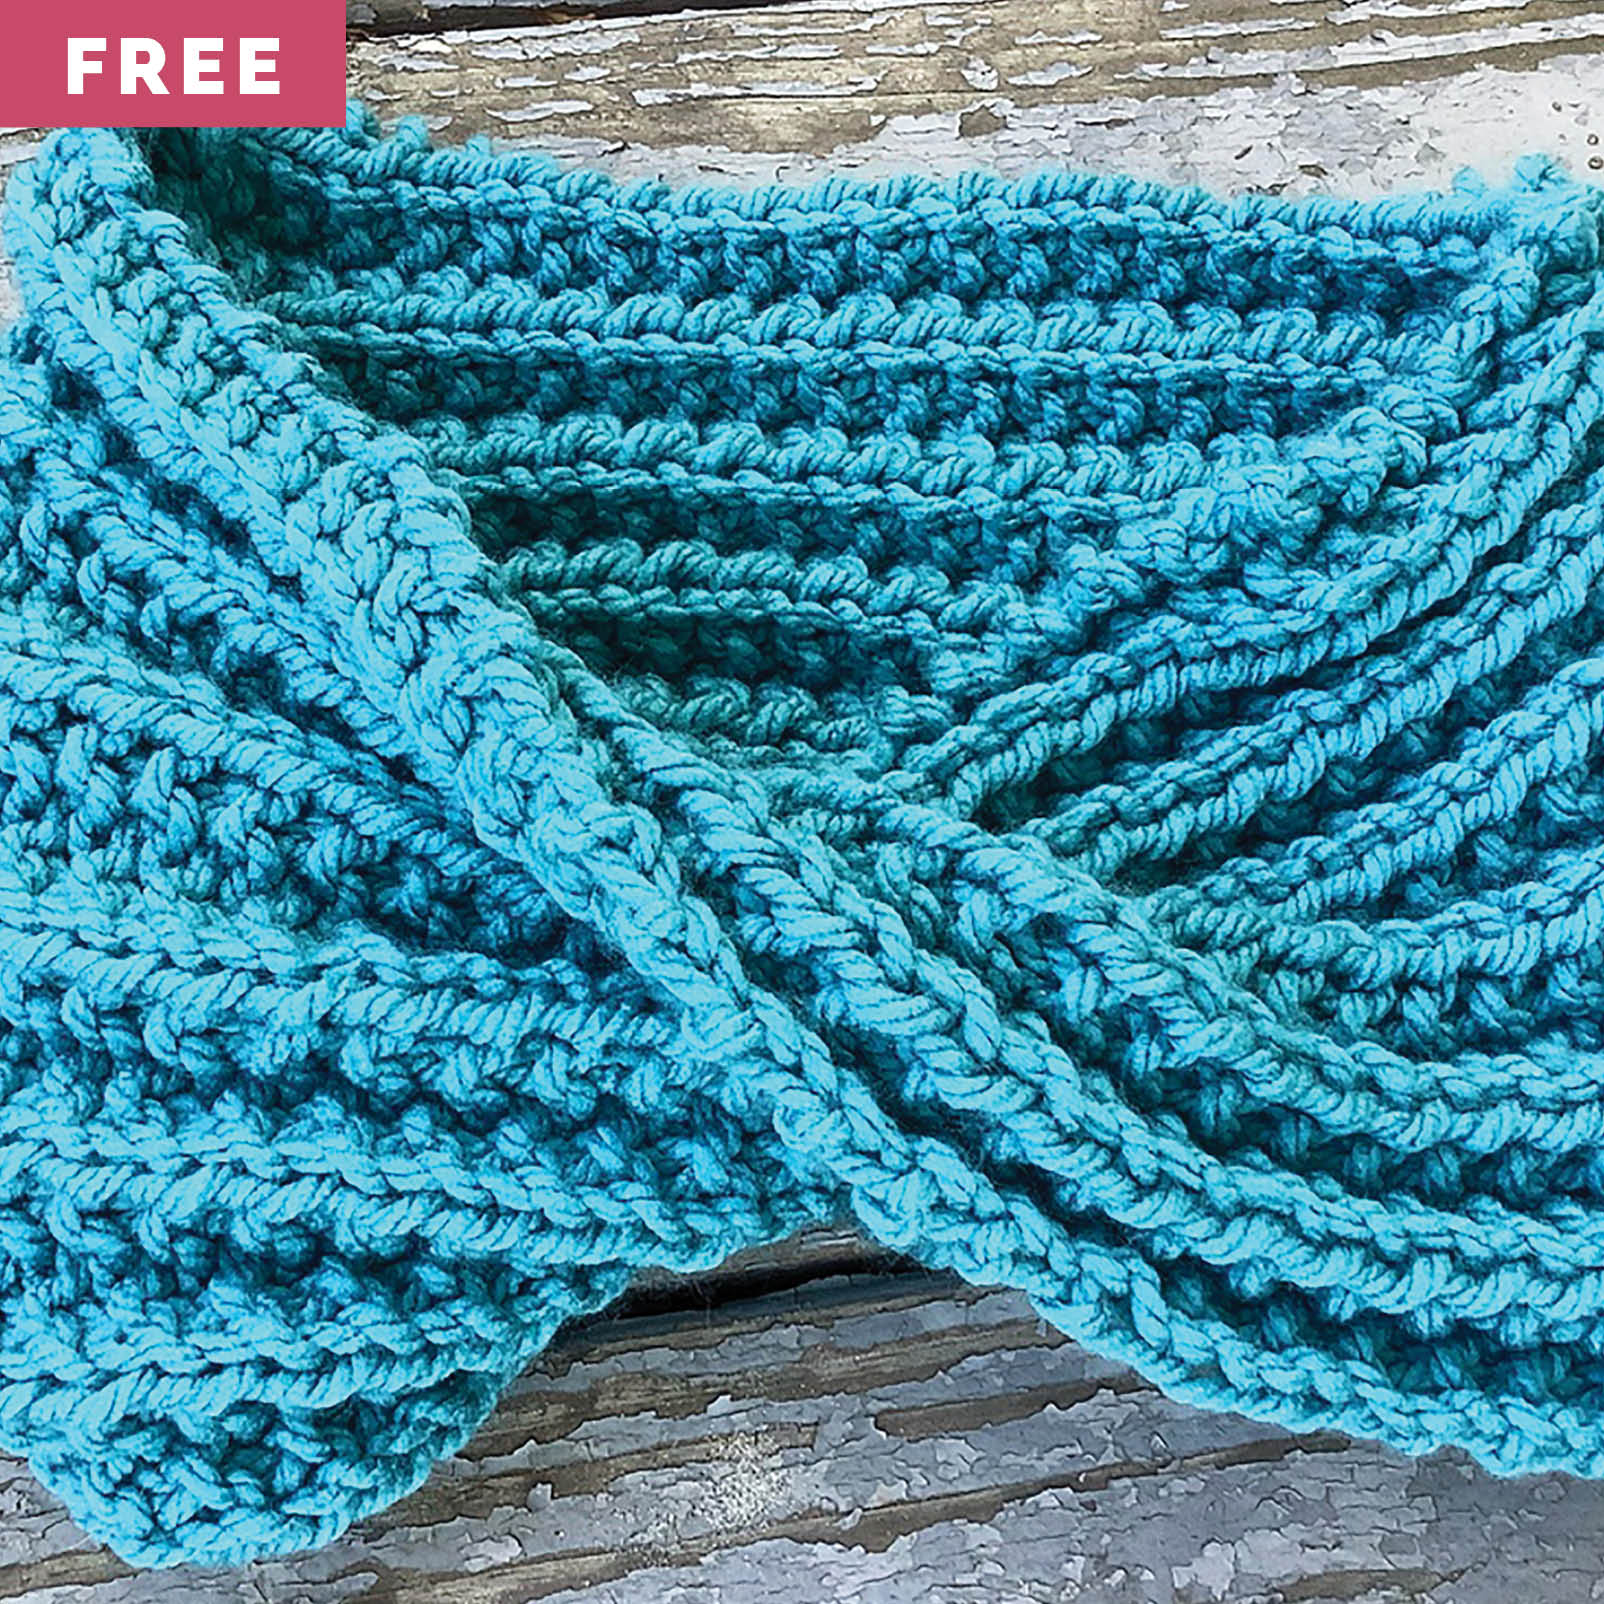 Free Knitting Pattern - Simple Textured Cowl